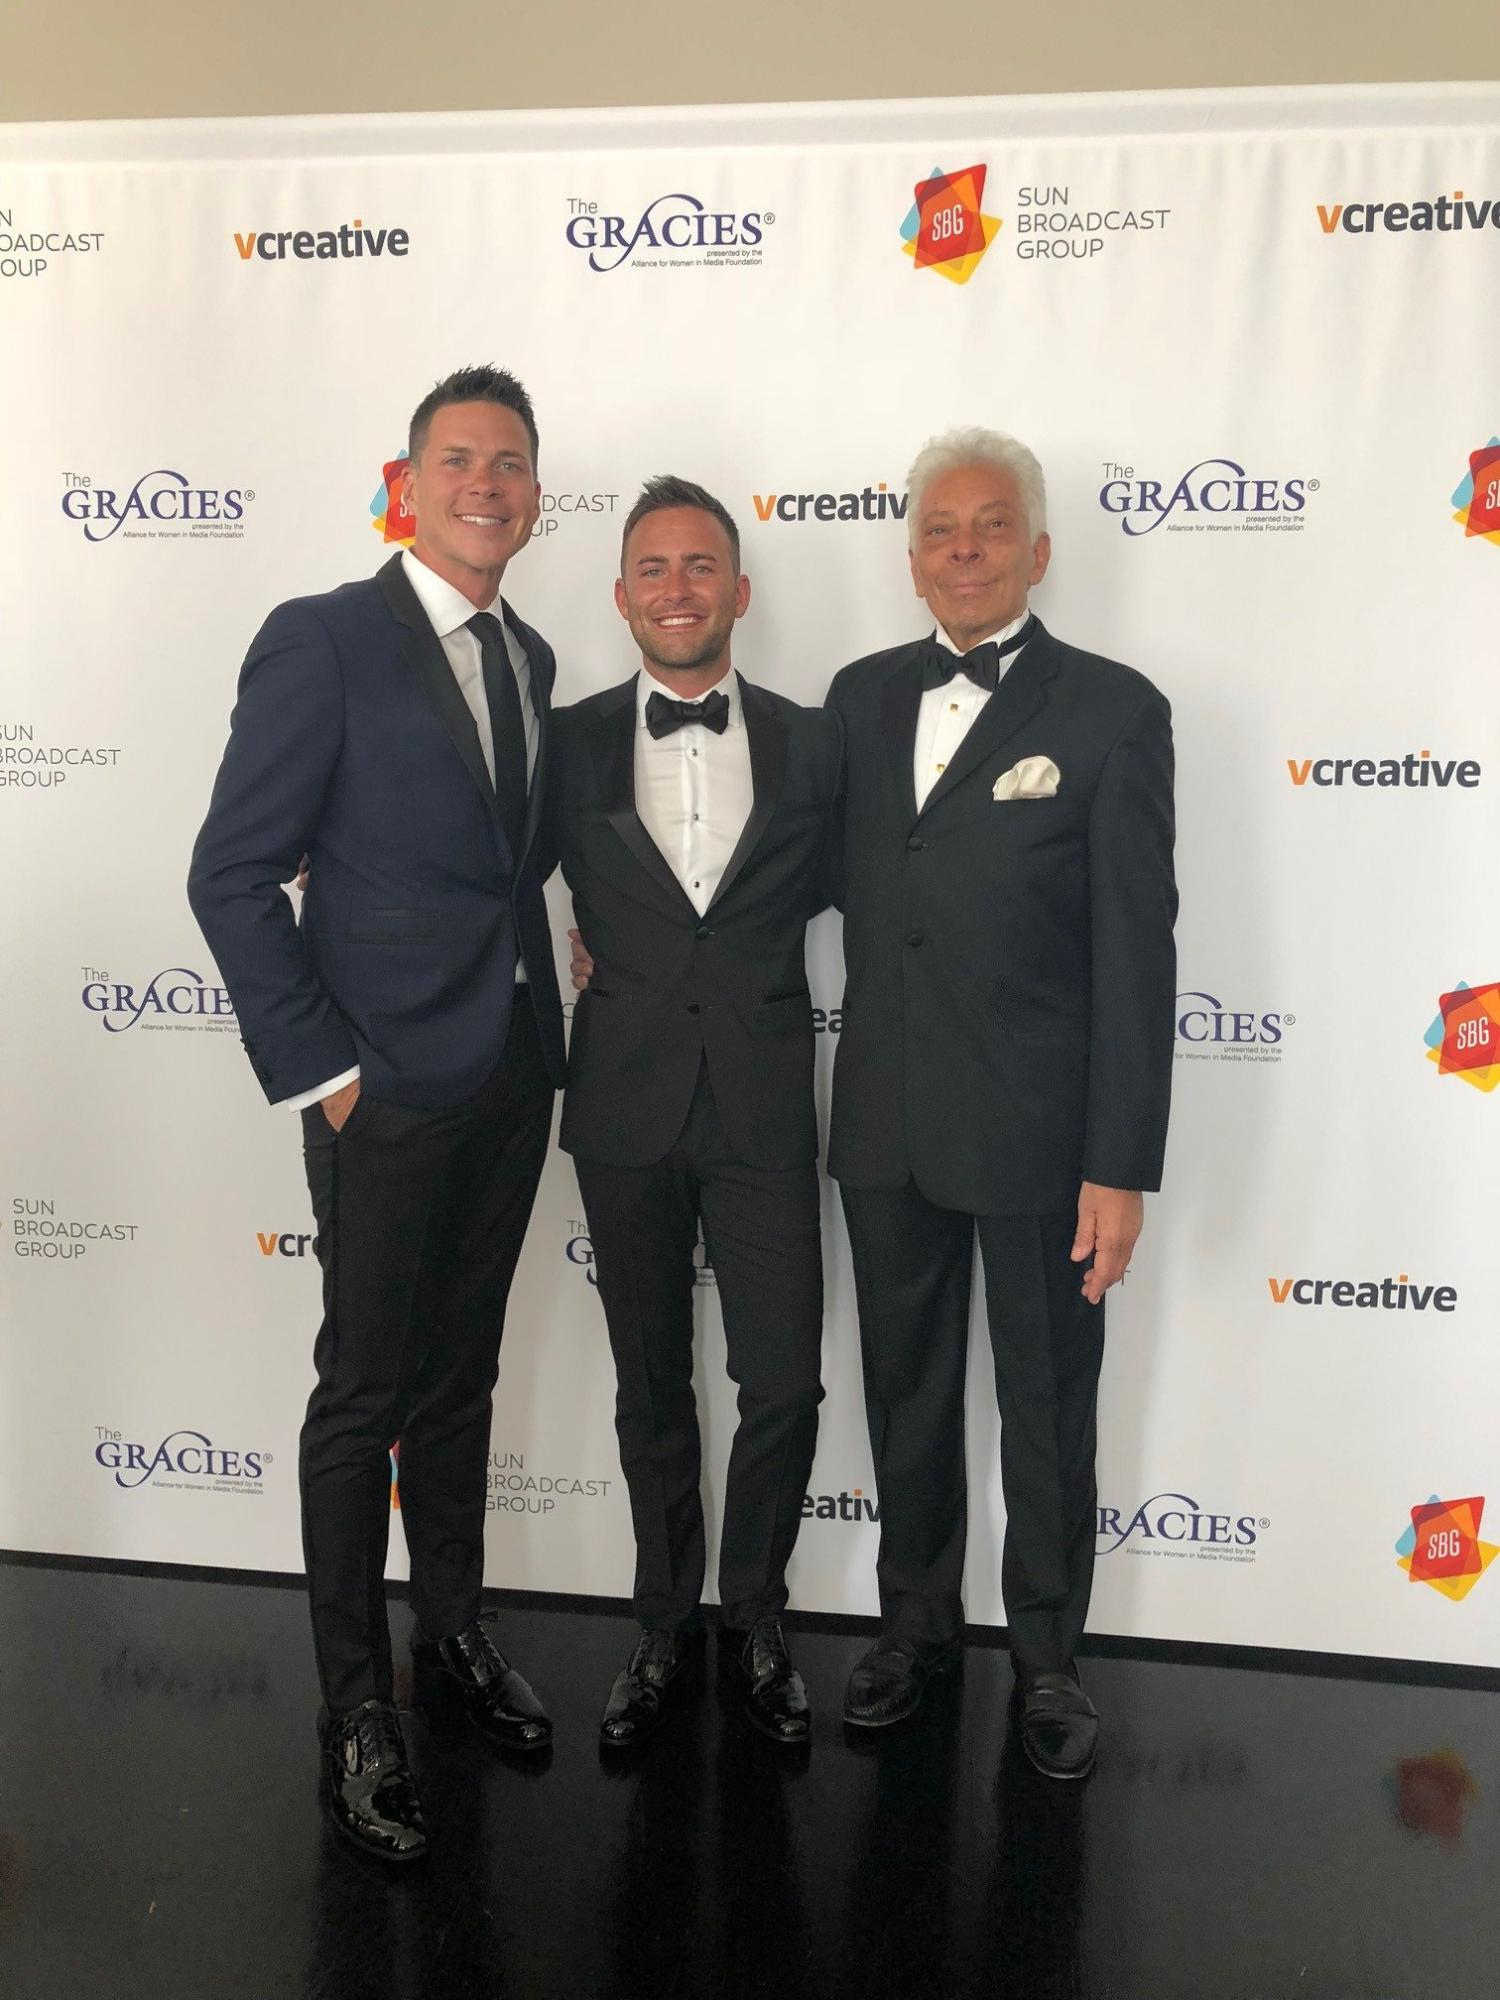 Sunbroadcast's Jay and Kris Bailey with Mike McVay at the Gracies Gala (2018)